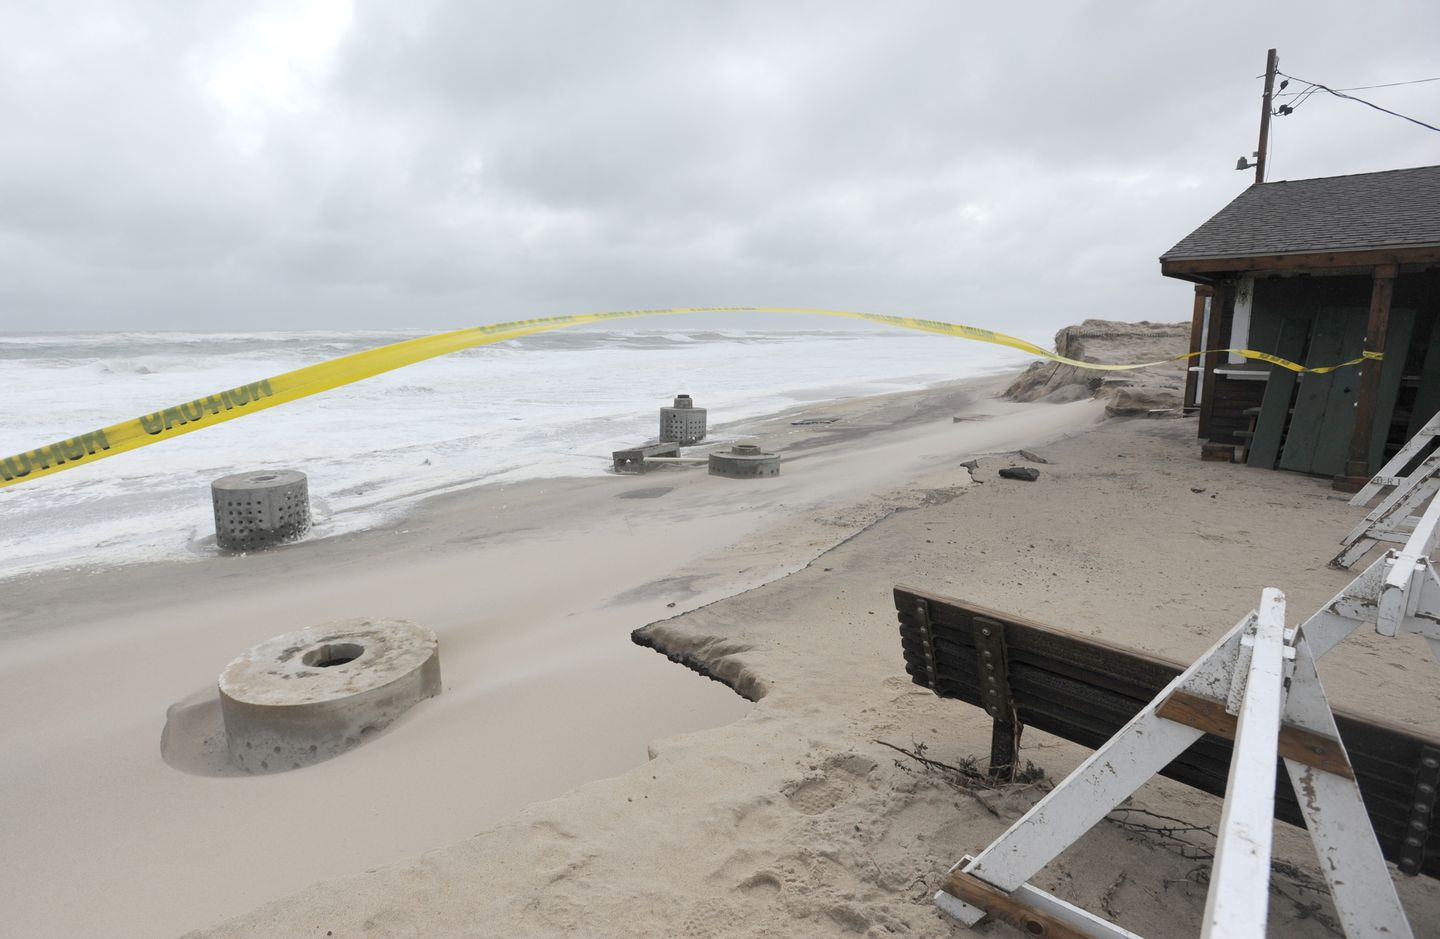 Nauset restaurant owner says his shack is about to fall into